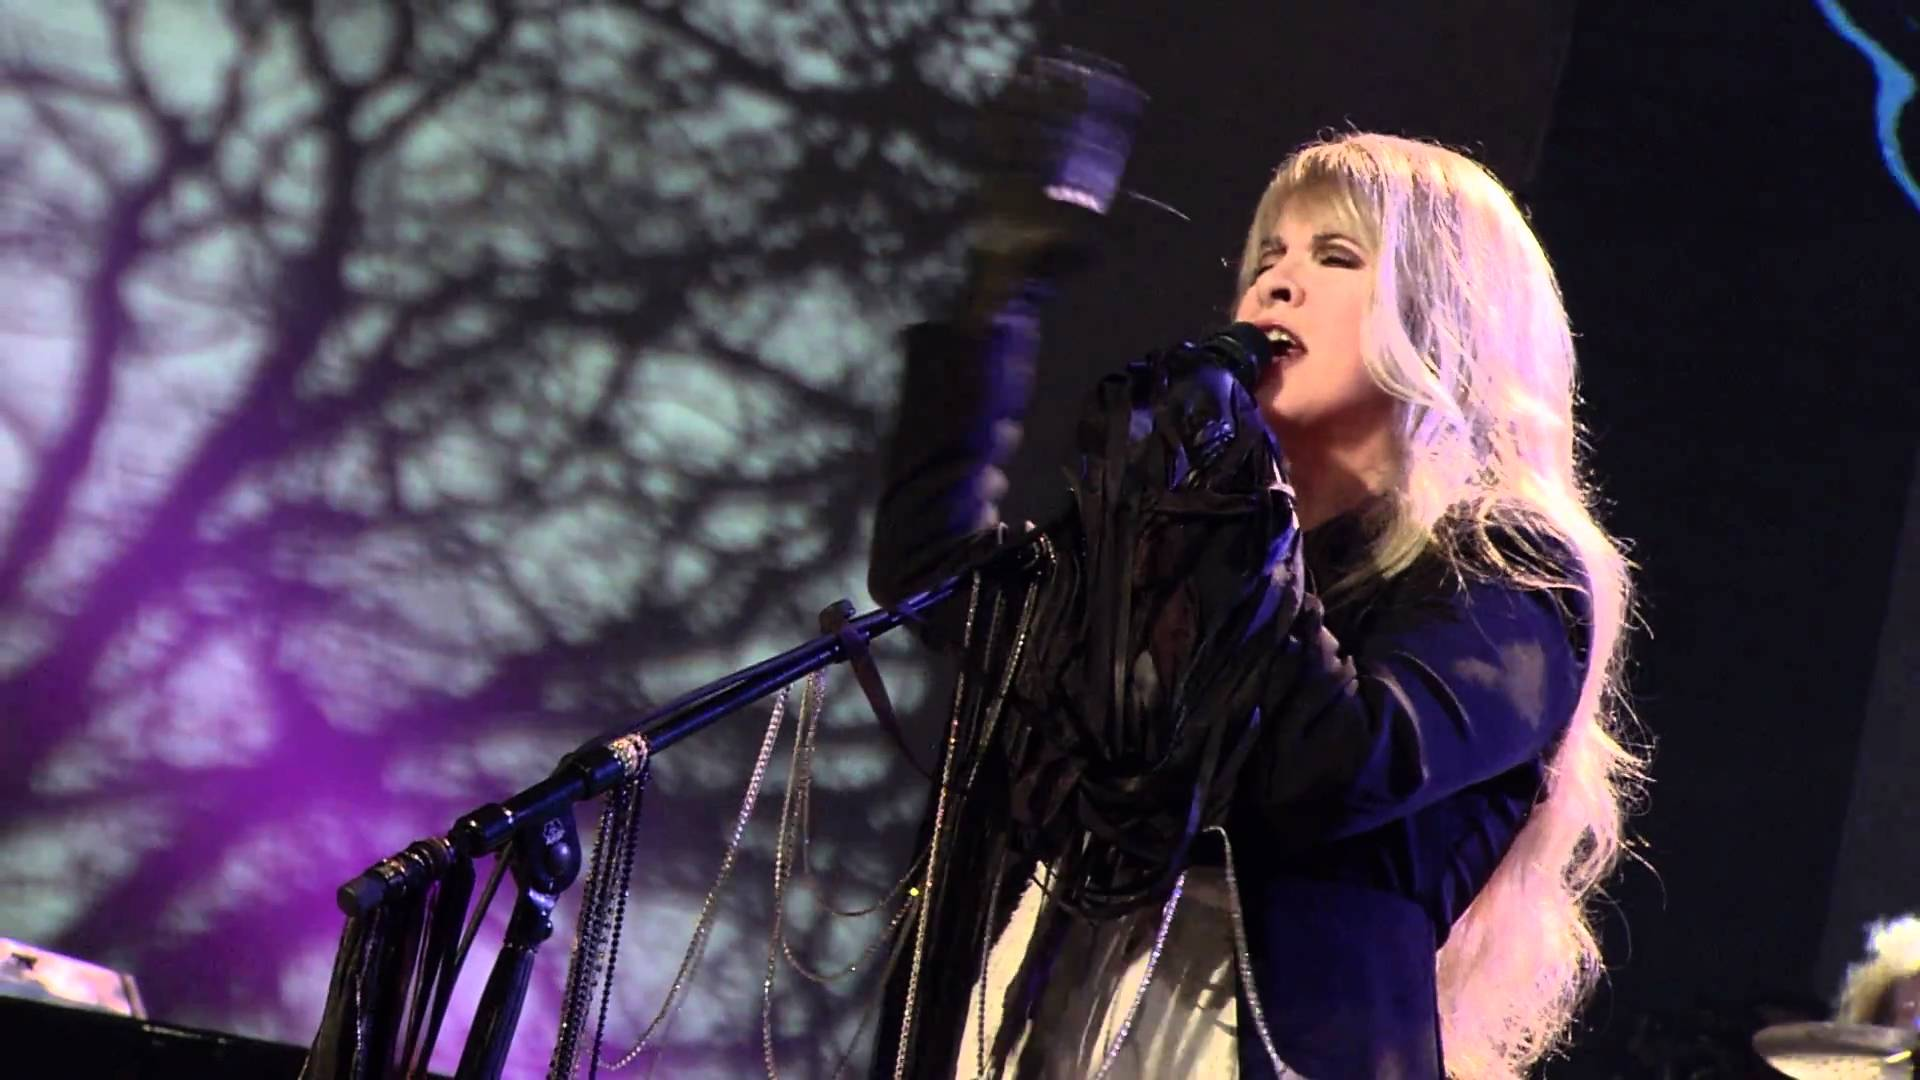 Stevie Nicks says she will never retire, plans to stay young forever